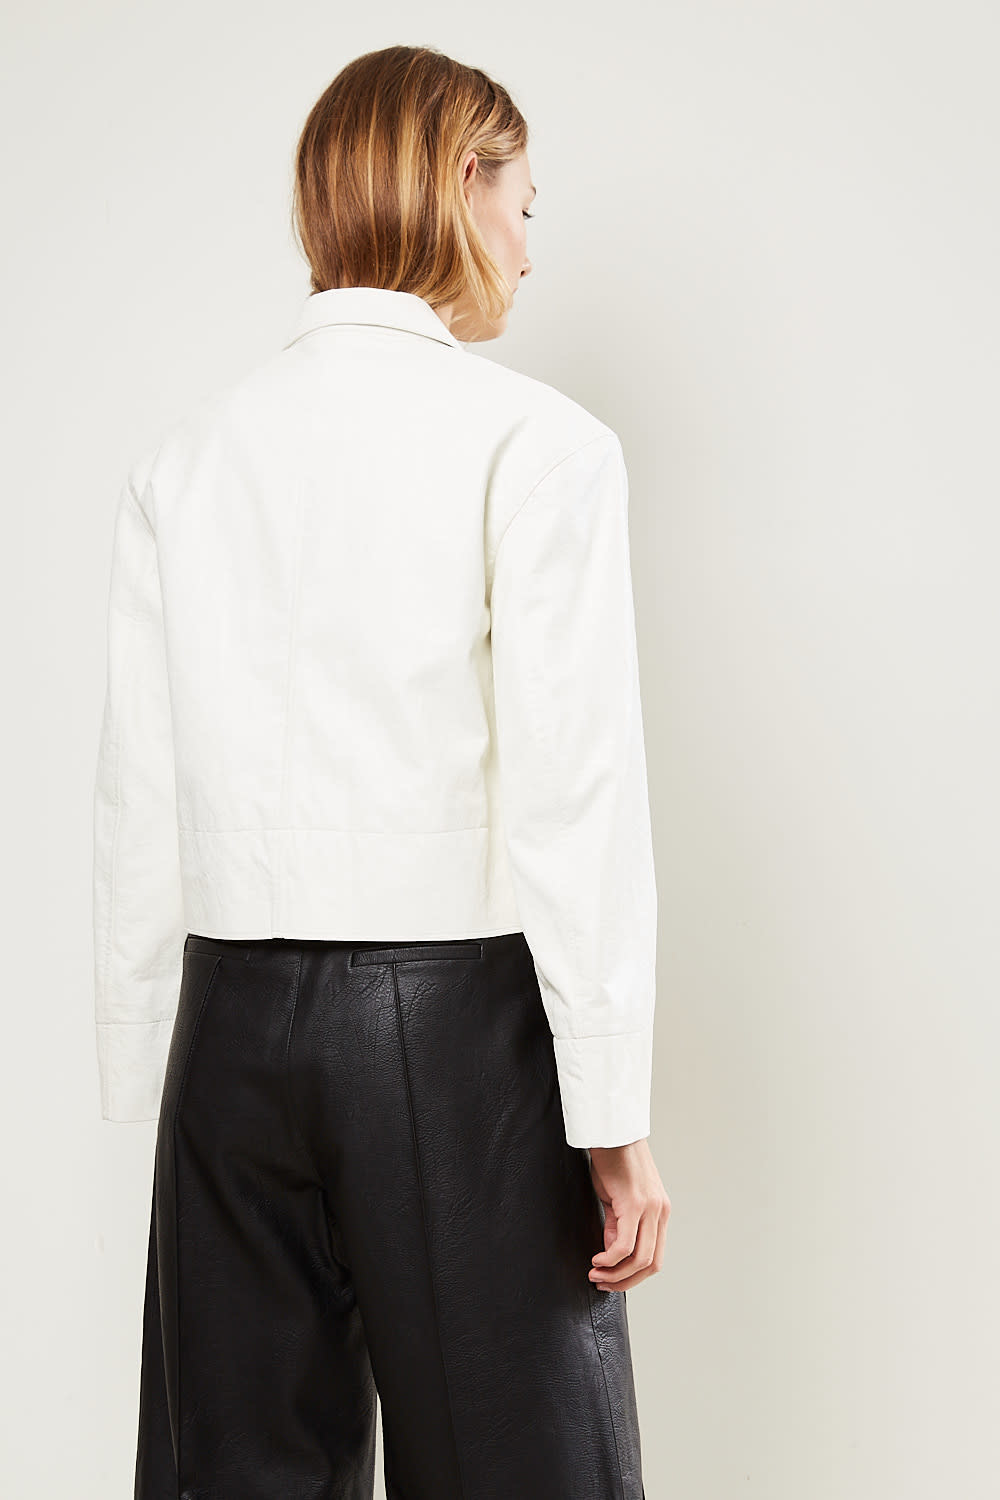 Drae - Faux leather button jacket